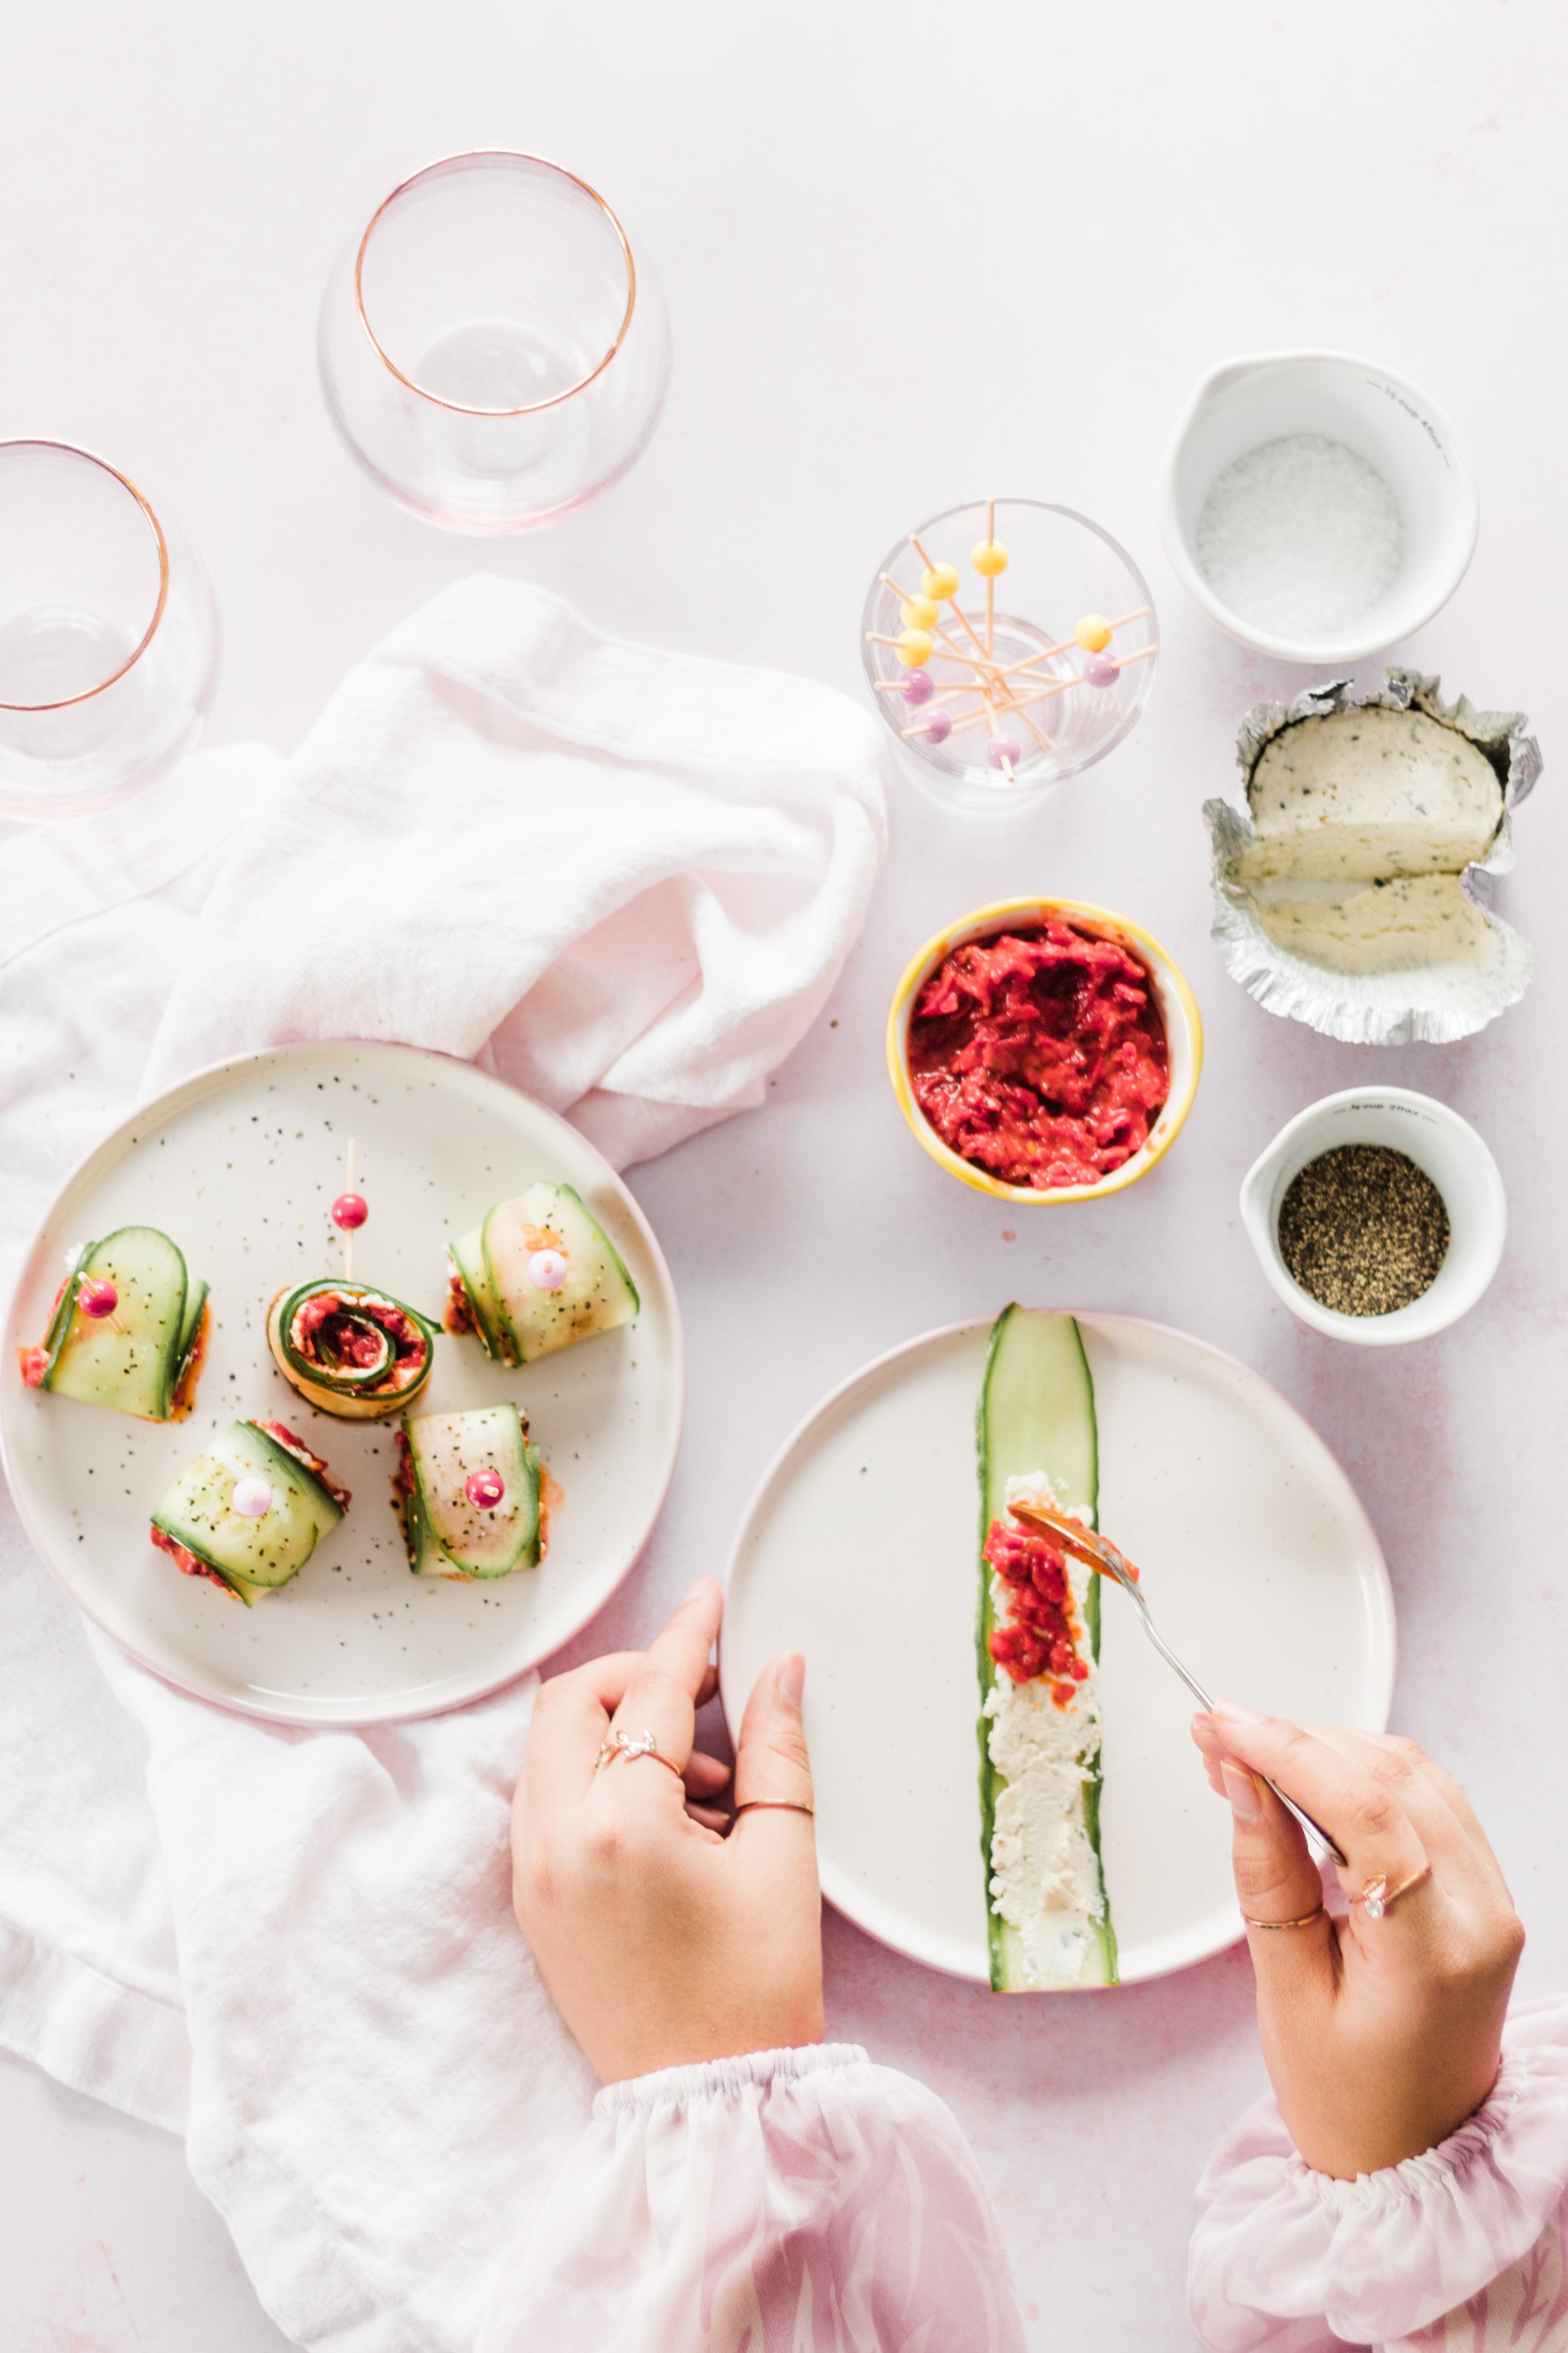 Holiday Appetizer: Cucumber Rolls — Making the holidays a breeze with these simplecanapésfilled with Boursincheese, piquillo pepper bruschetta, and a little salt and pepper! #appetizer #christmasrecipes #appetizerseasy #vegetarianrecipes #dinnerpartyrecipes